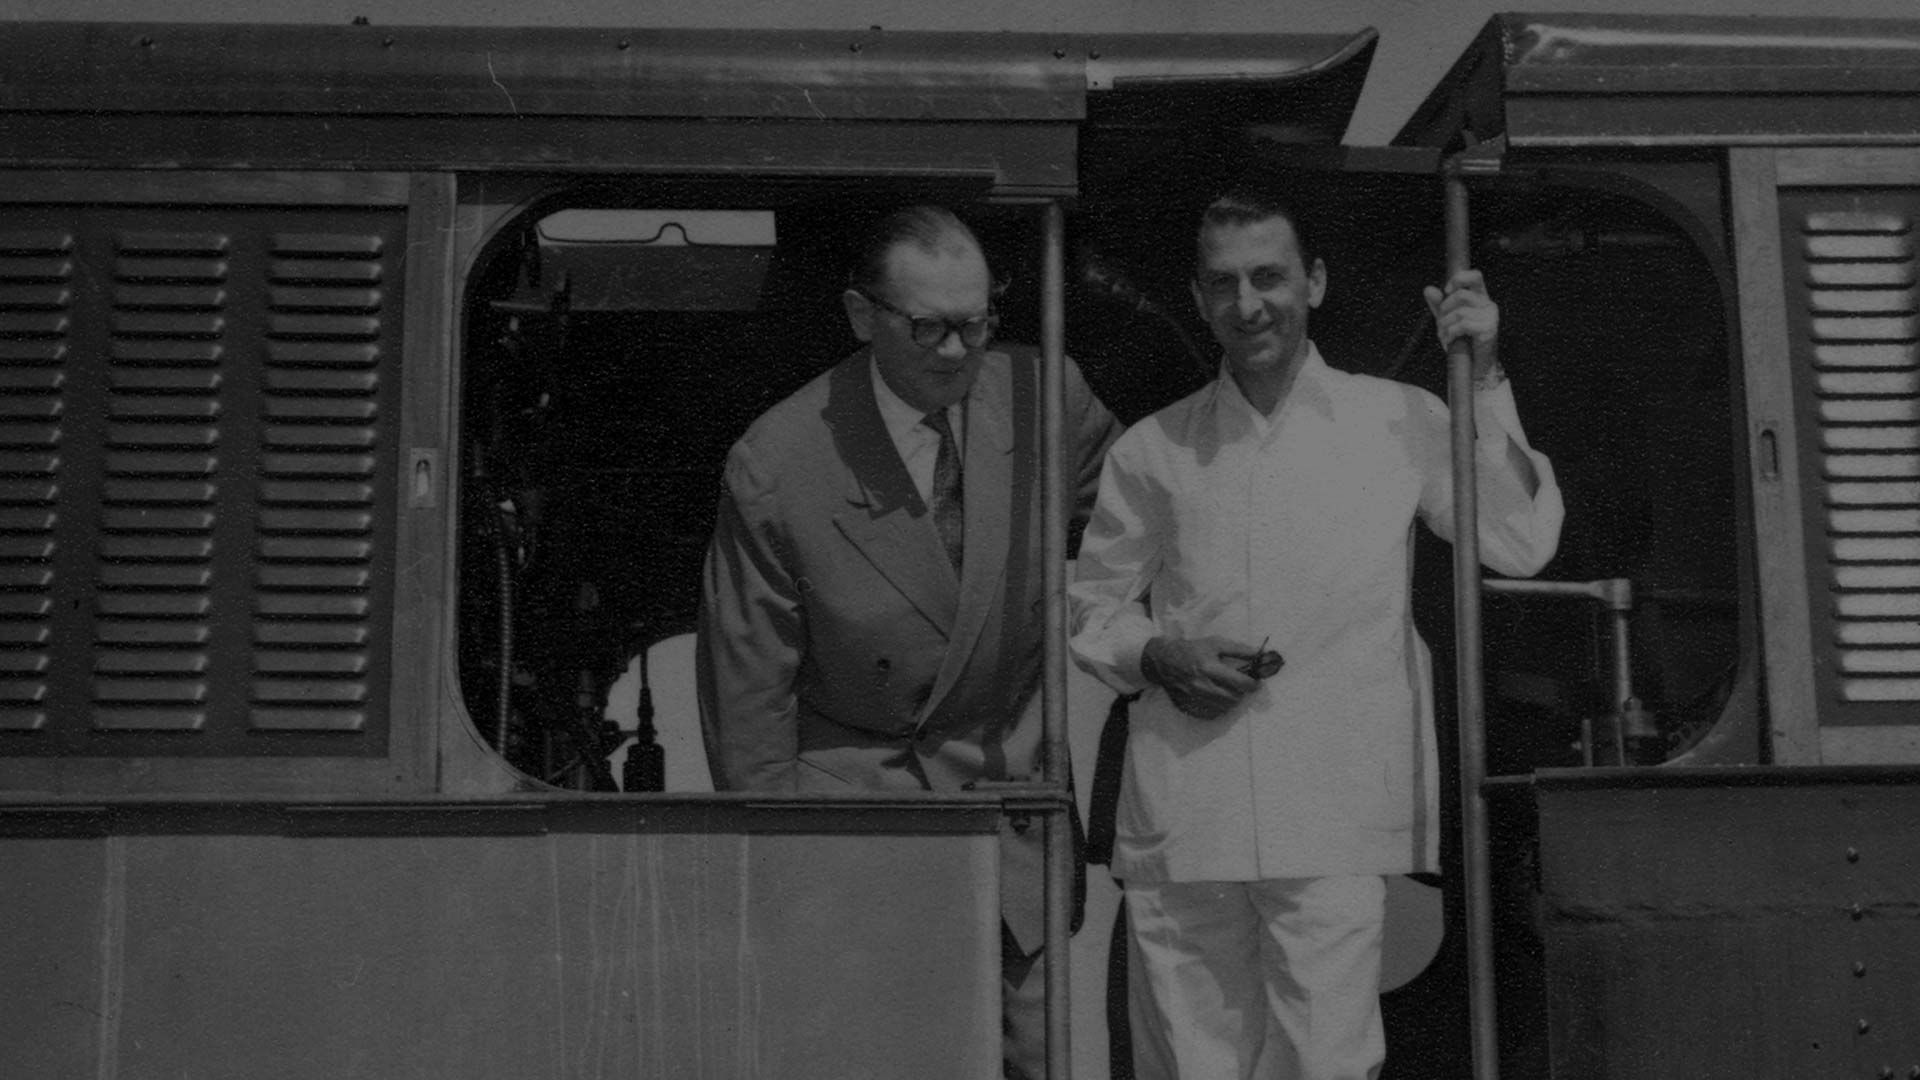 JRD Tata and Dr Fritz Koenecke